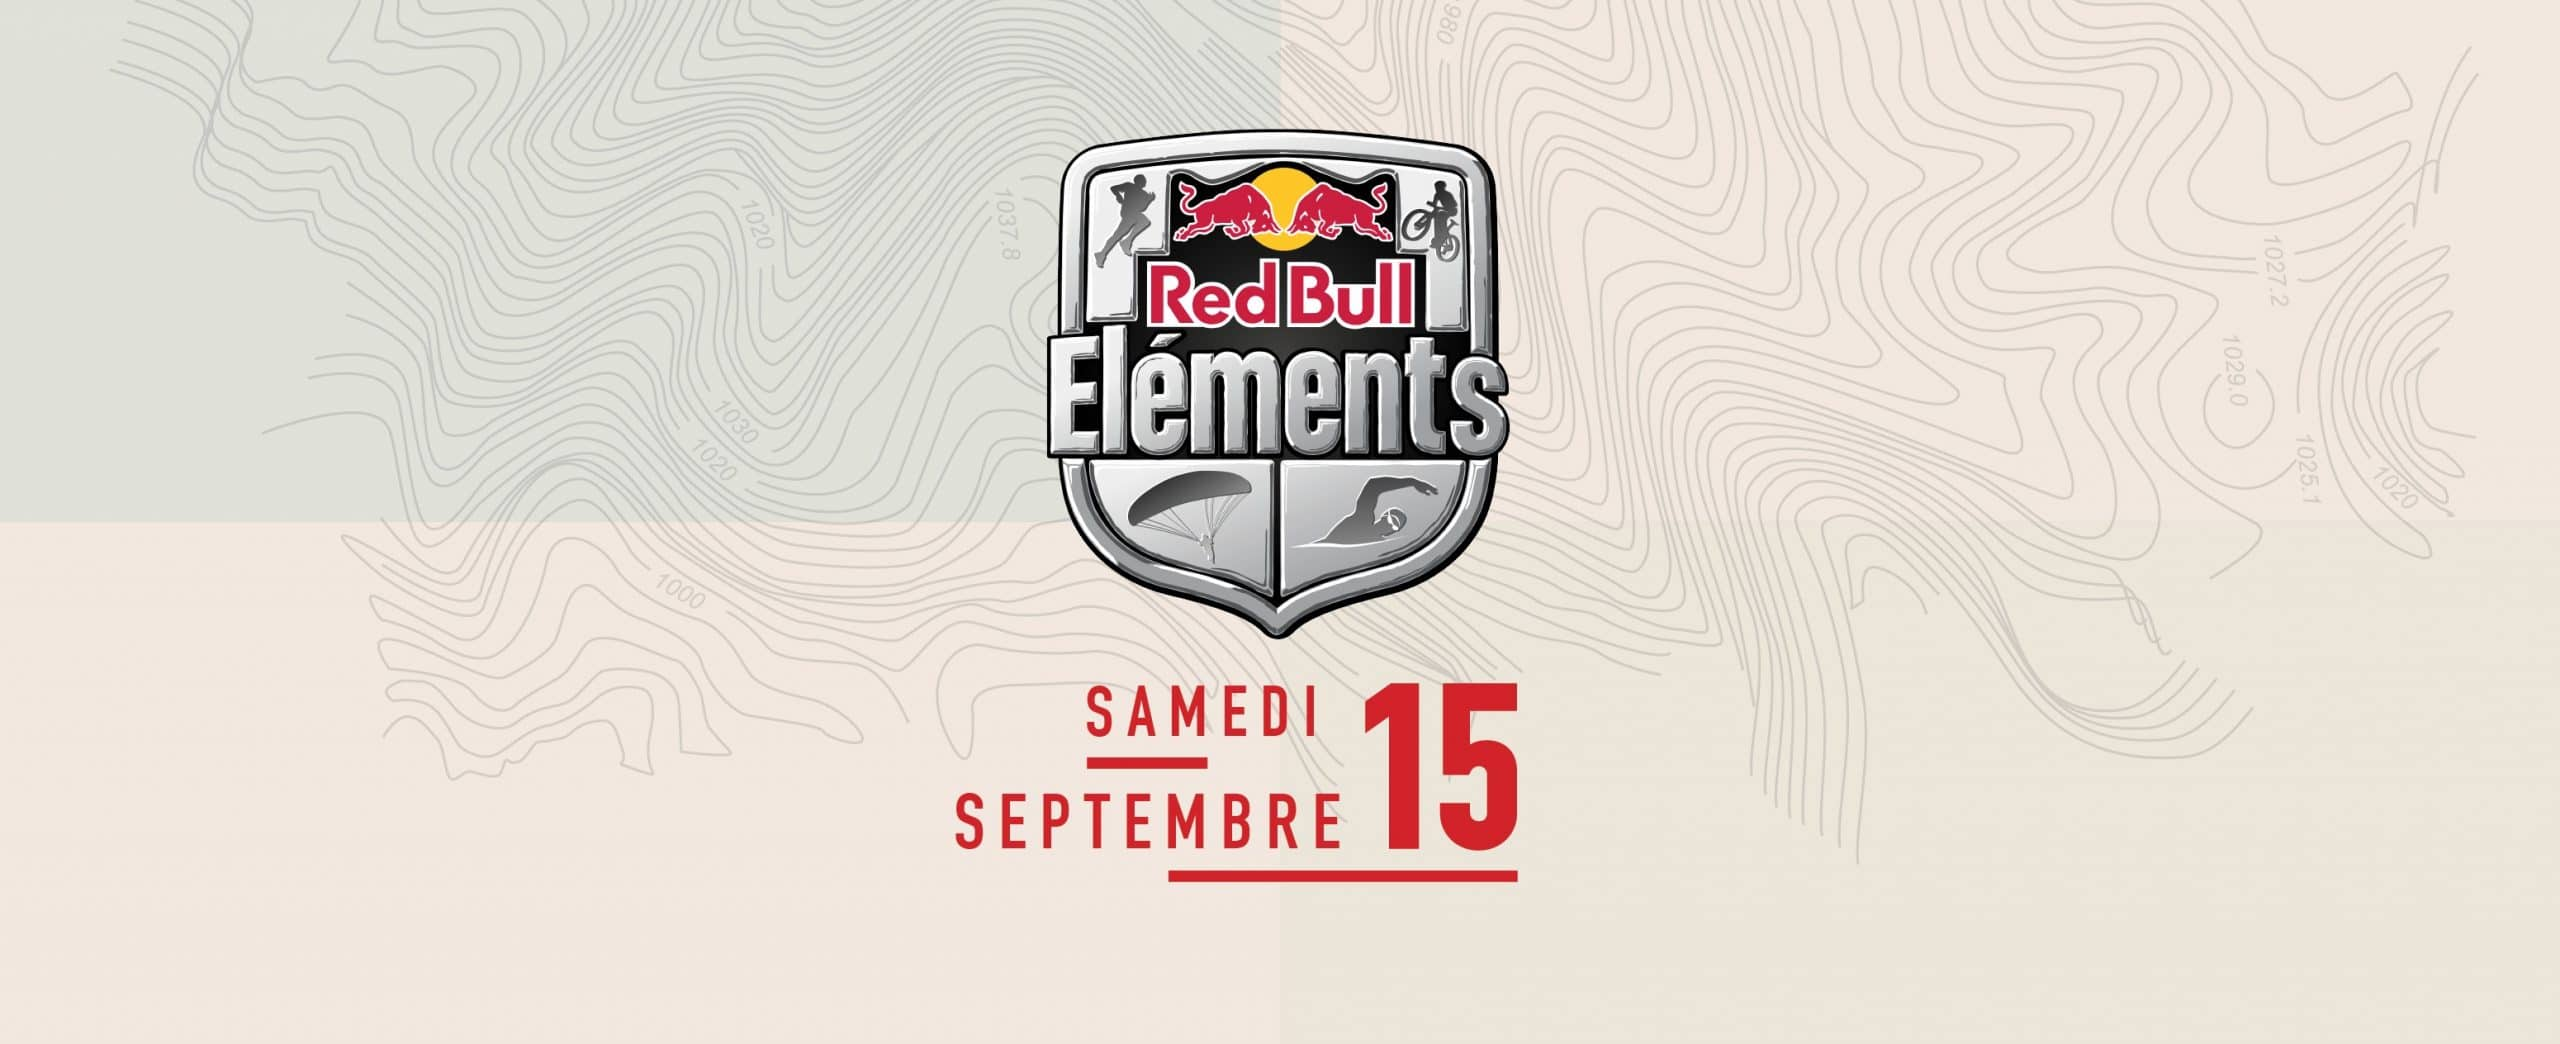 Red Bull Elements 2018